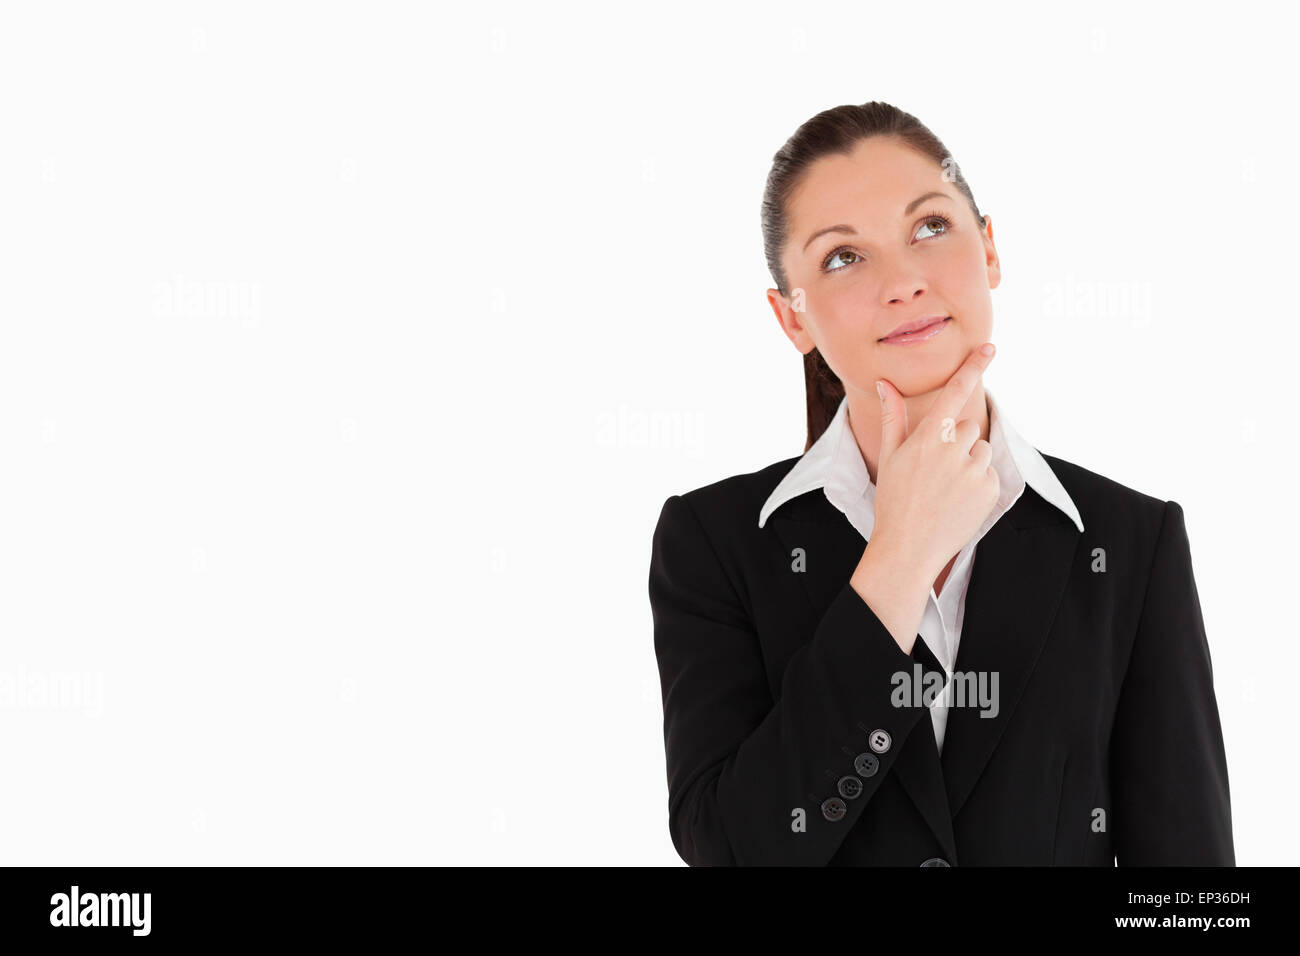 Charming woman in suit posing - Stock Image